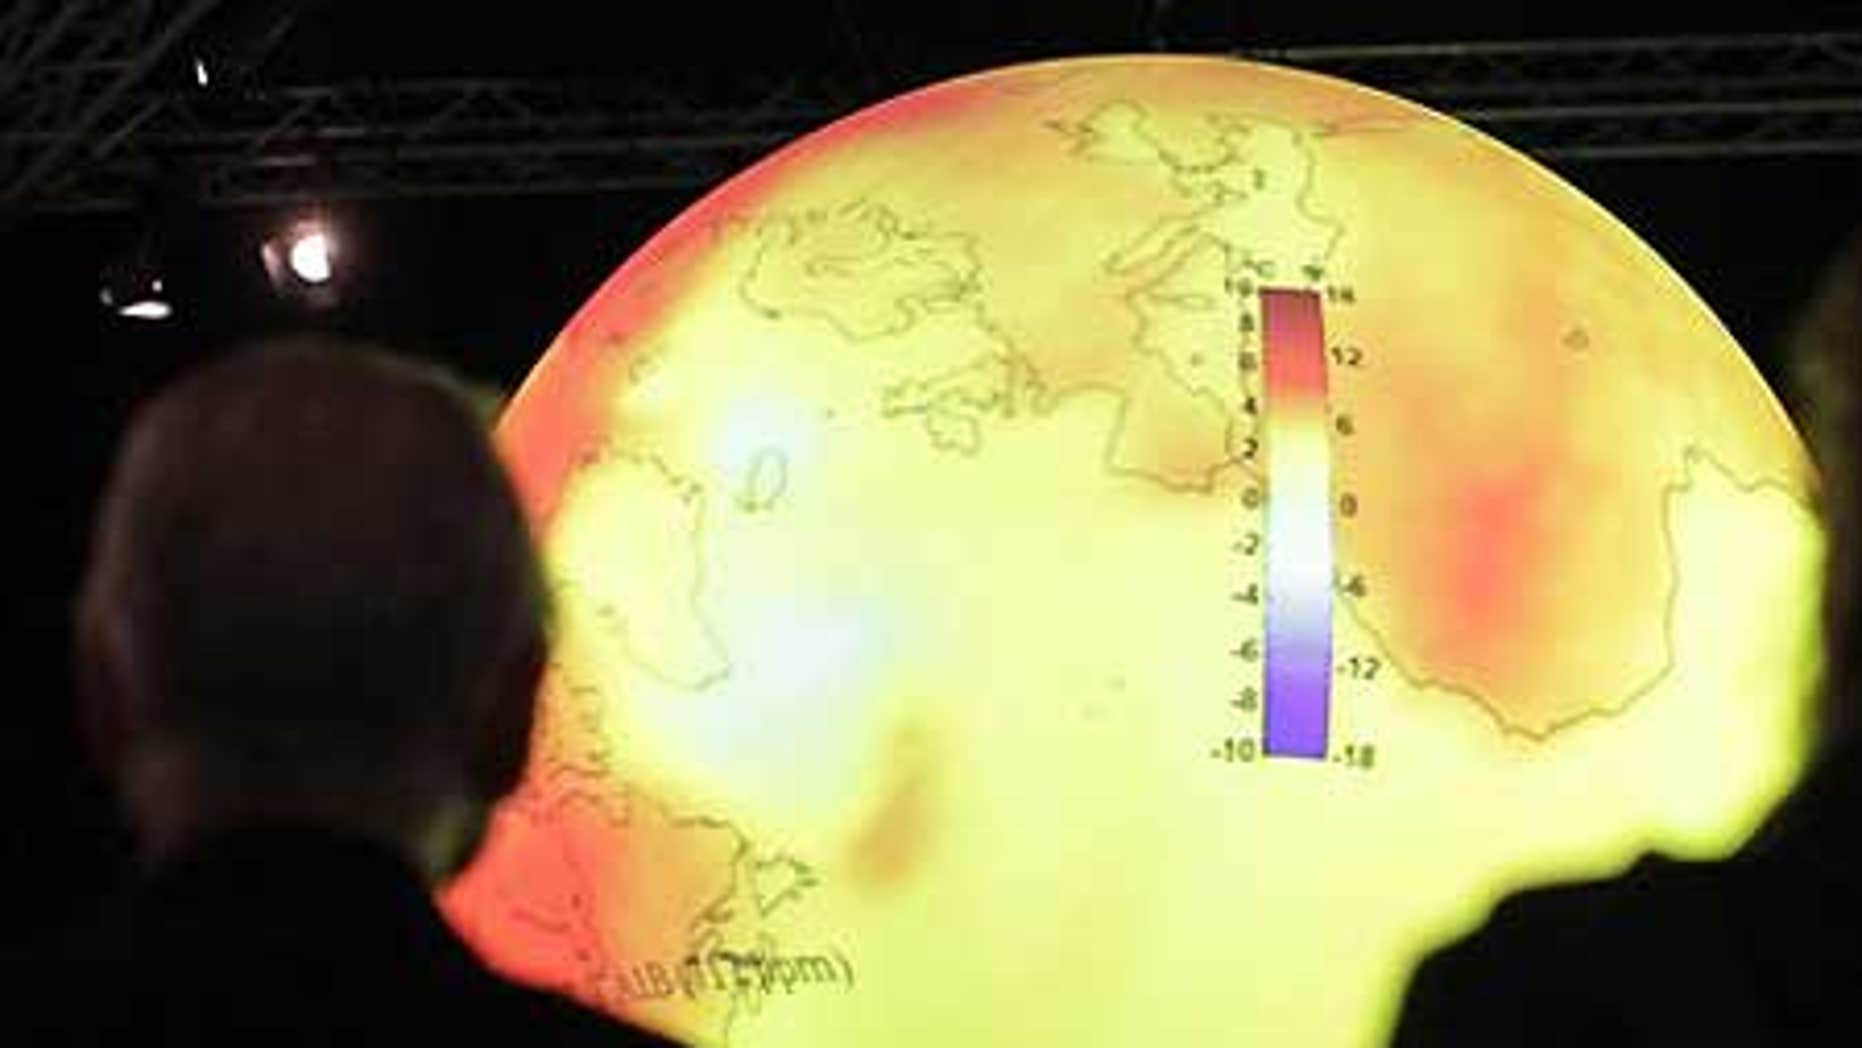 Dec. 8: Delegates look at a giant balloon displaying the warming of the world's oceans at the U.S. center at the U.N. Climate Summit in Copenhagen.